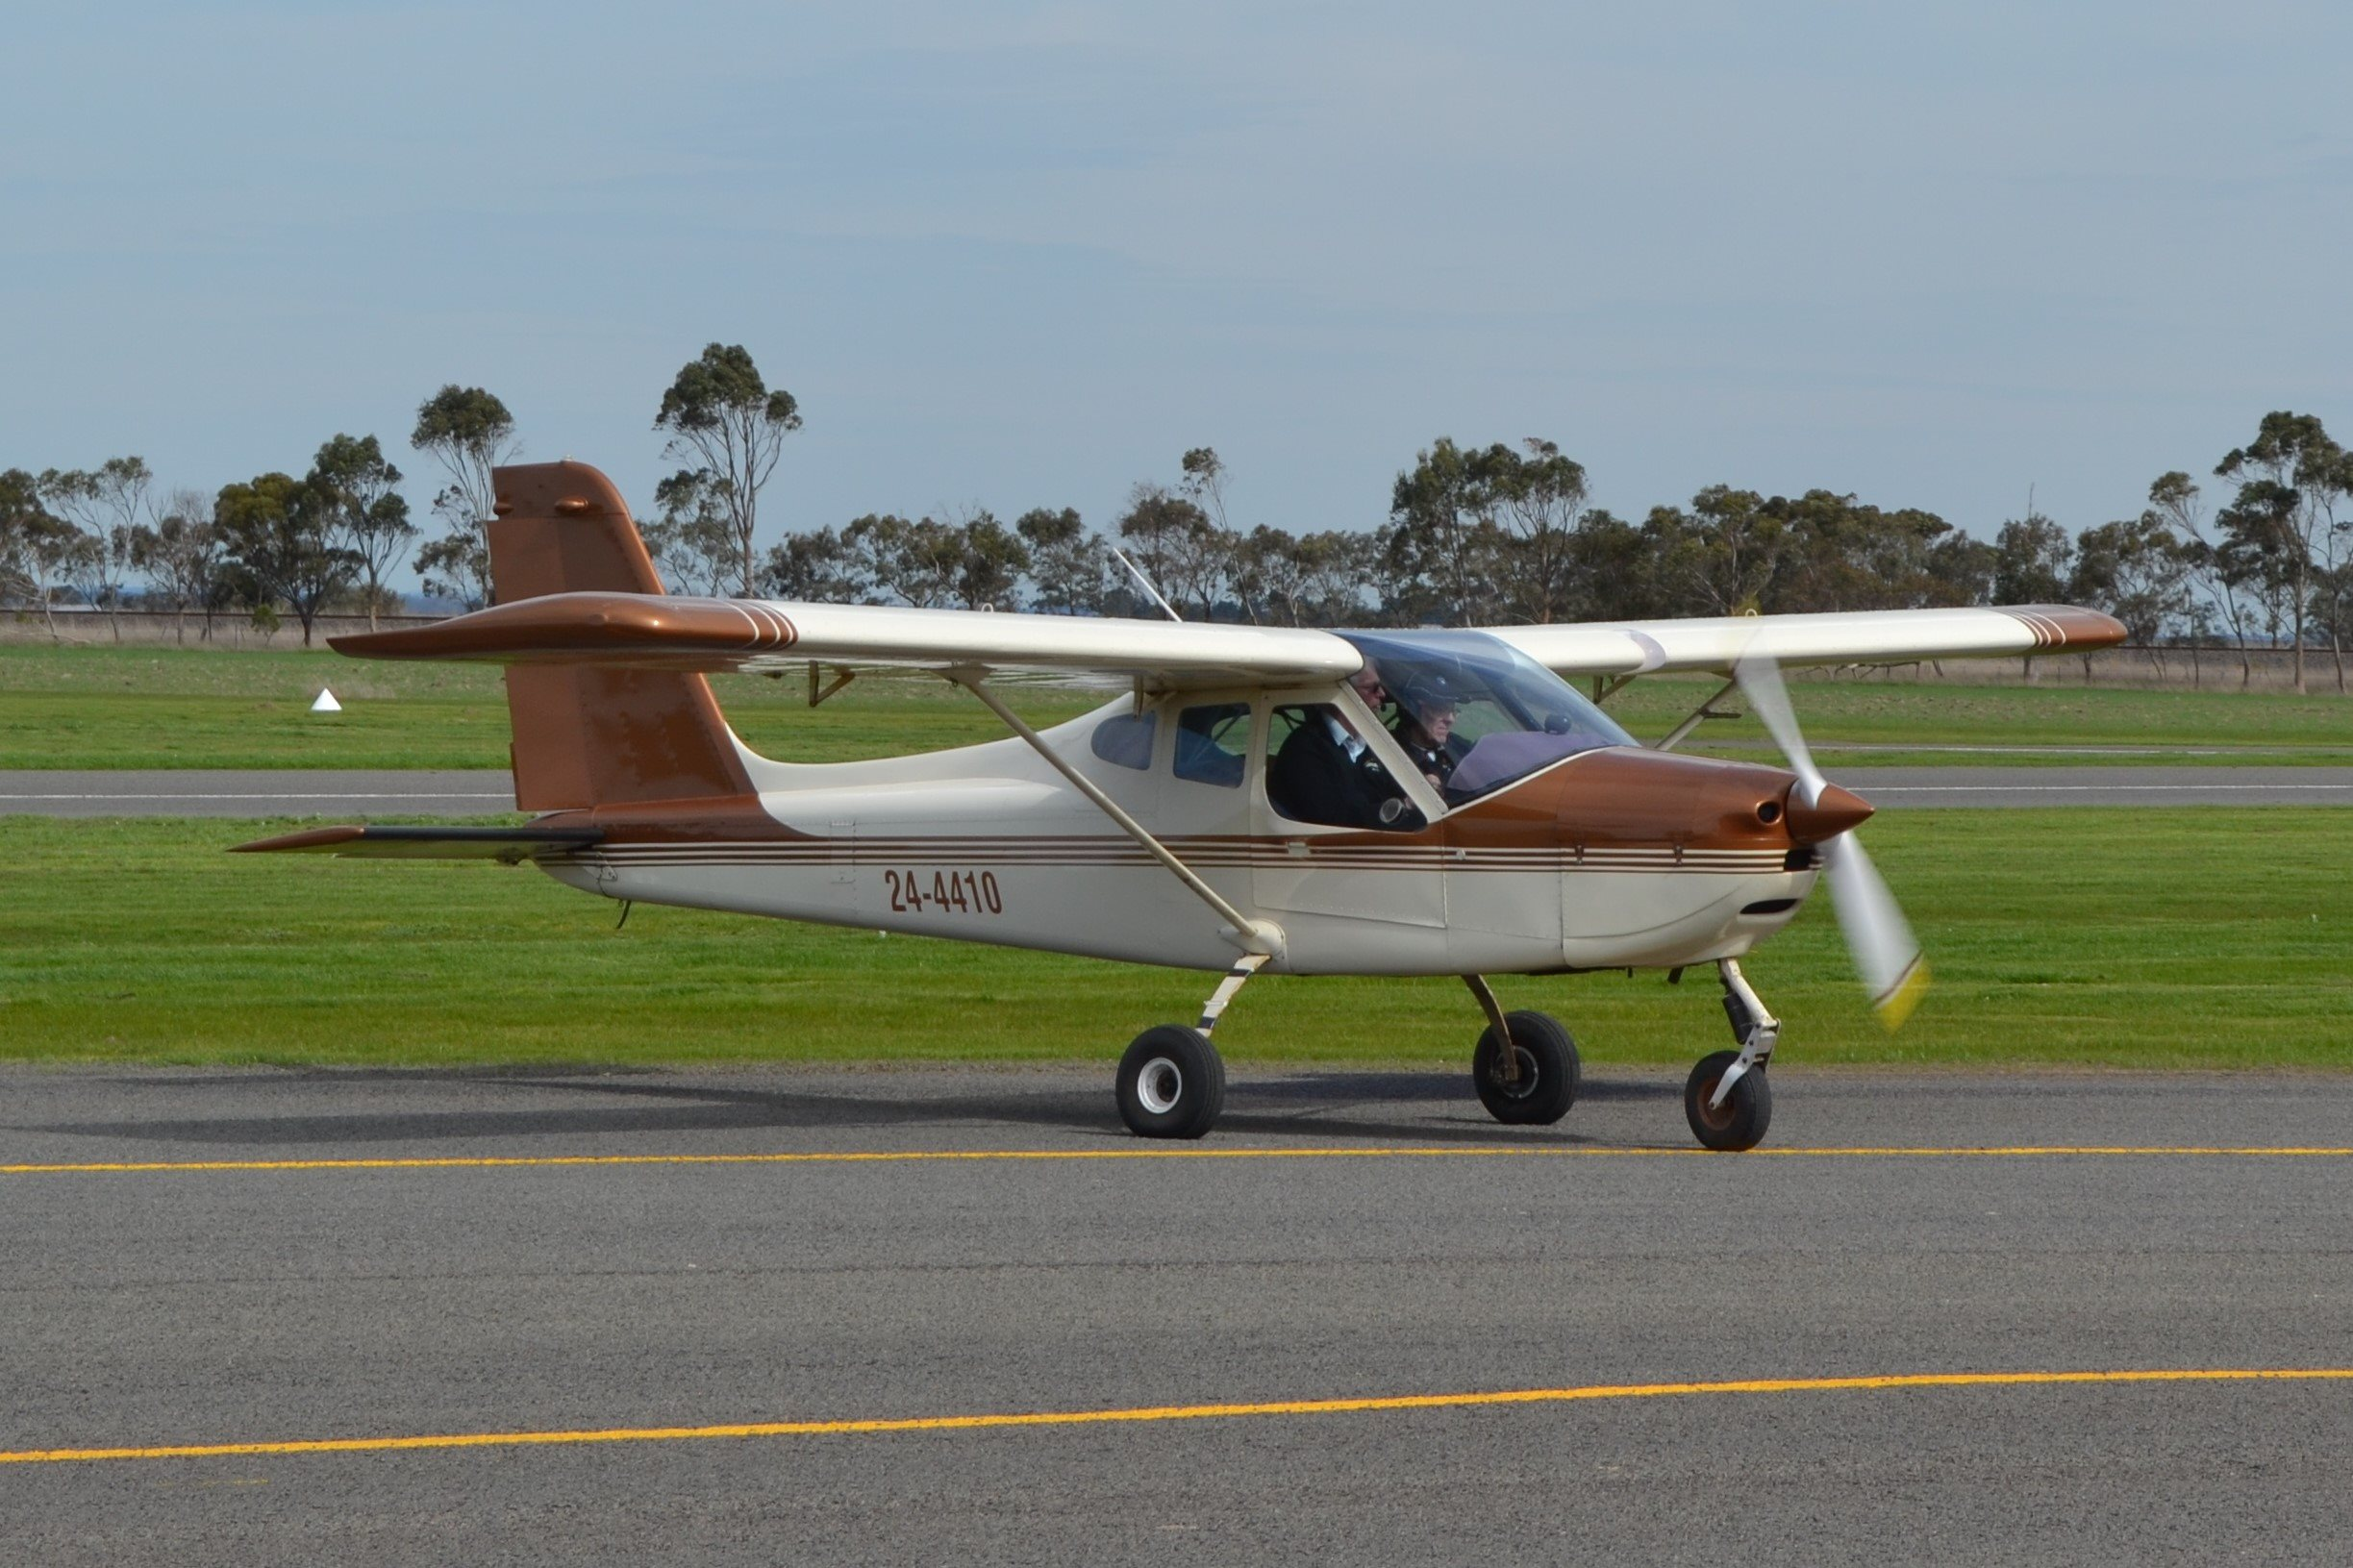 2006 Tecnam P92 Echo Super Aircraft